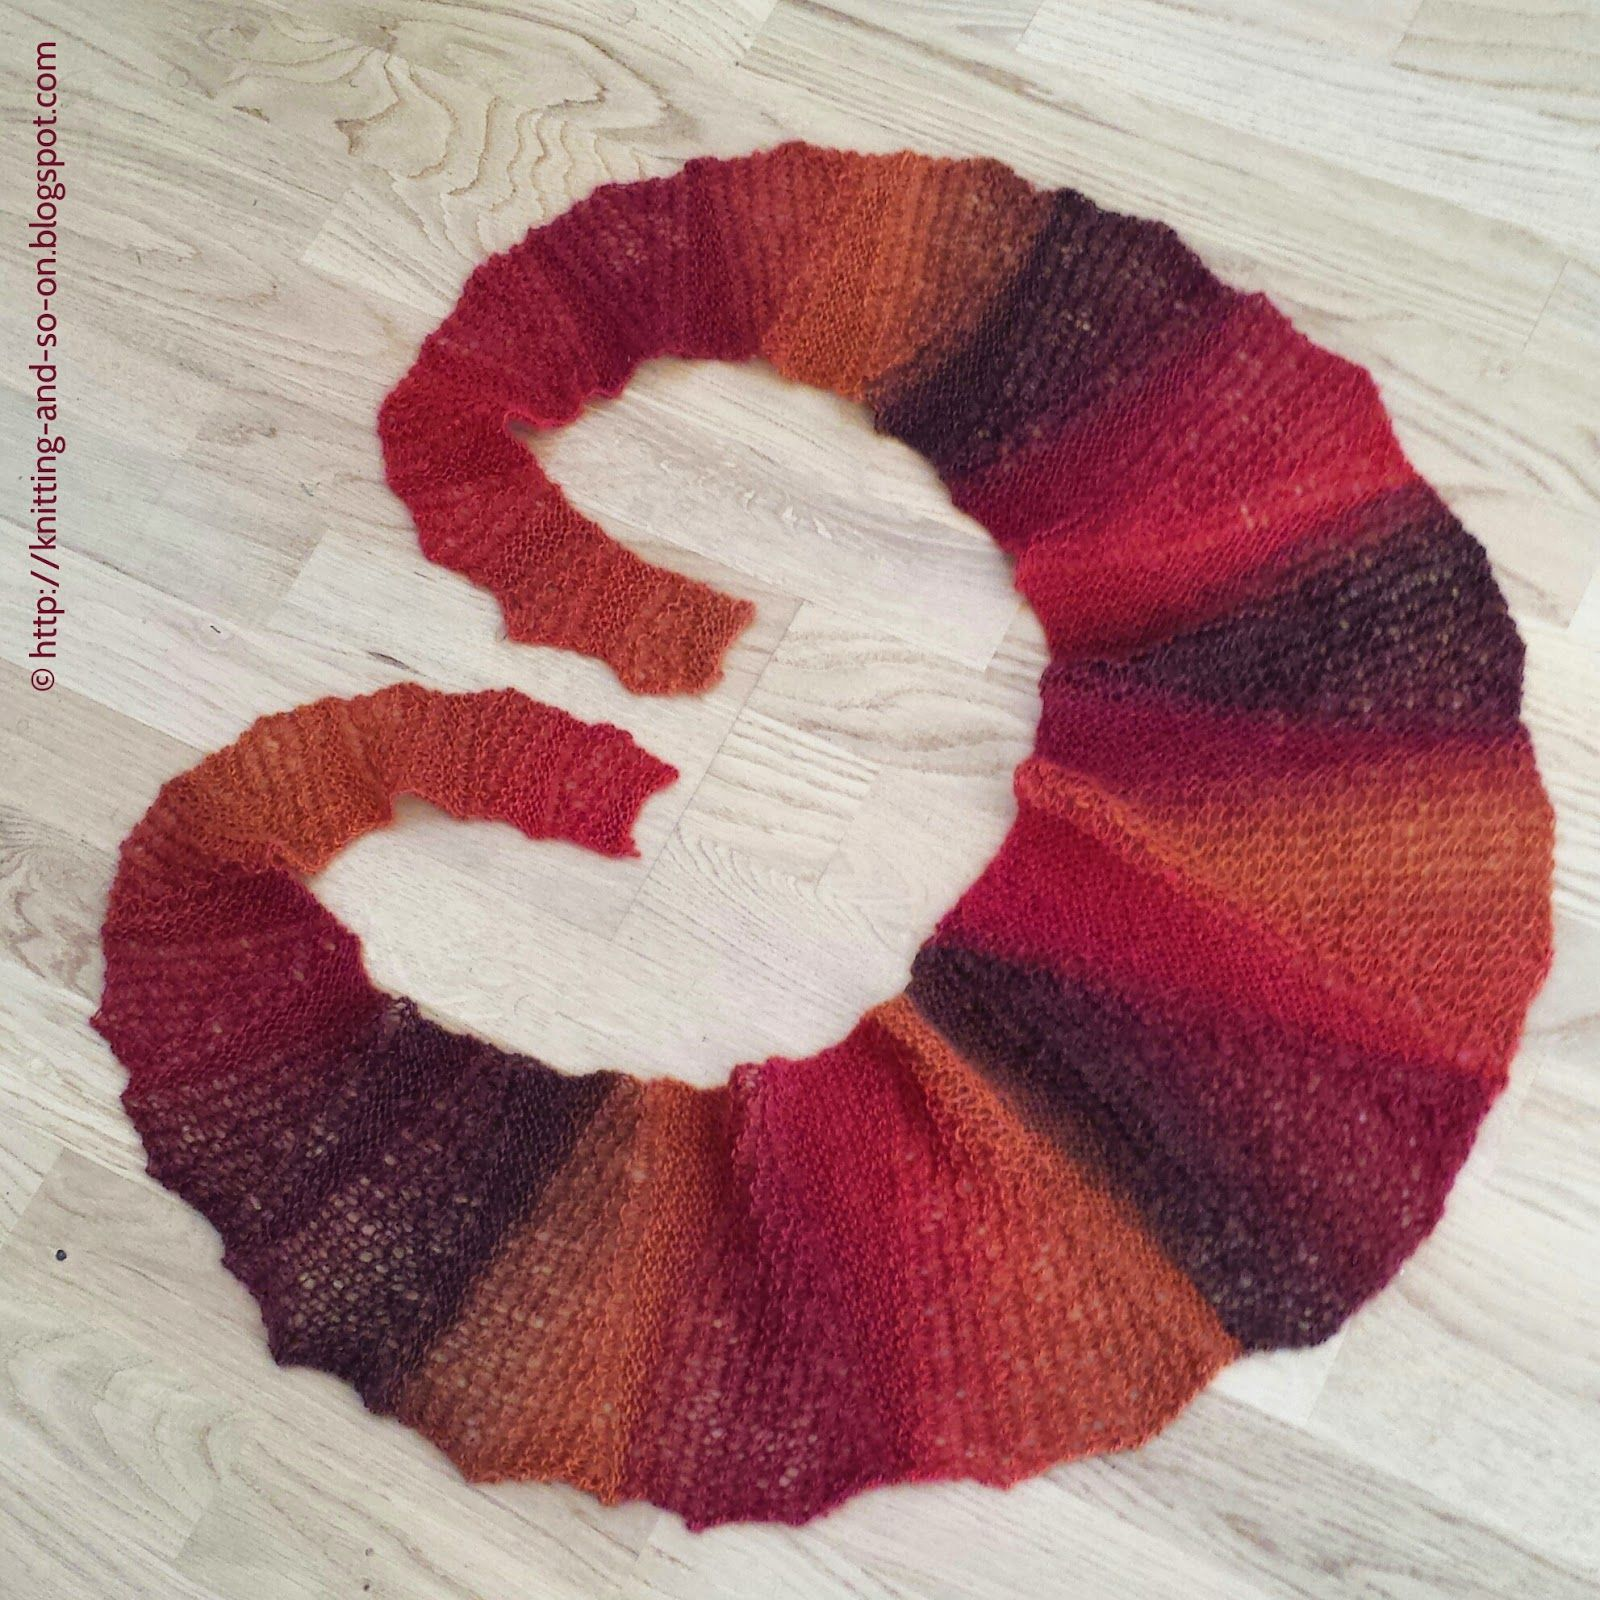 Gratis-Strickanleitung: Through Thick and Thin Schal | Stricken ...